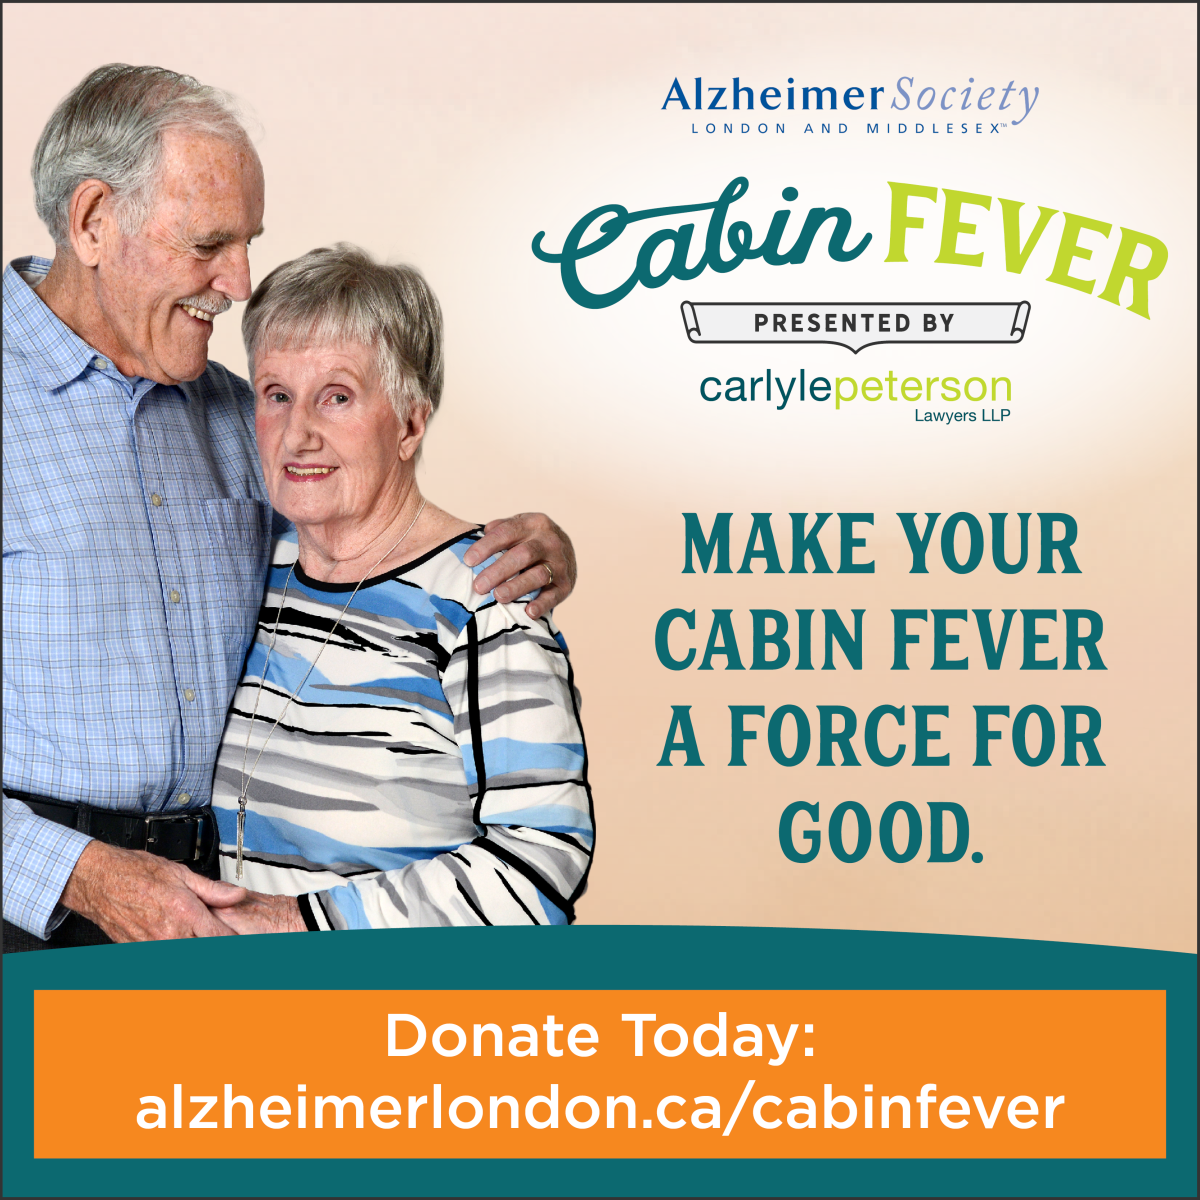 Alzheimer Society Cabin Fever Campaign - image